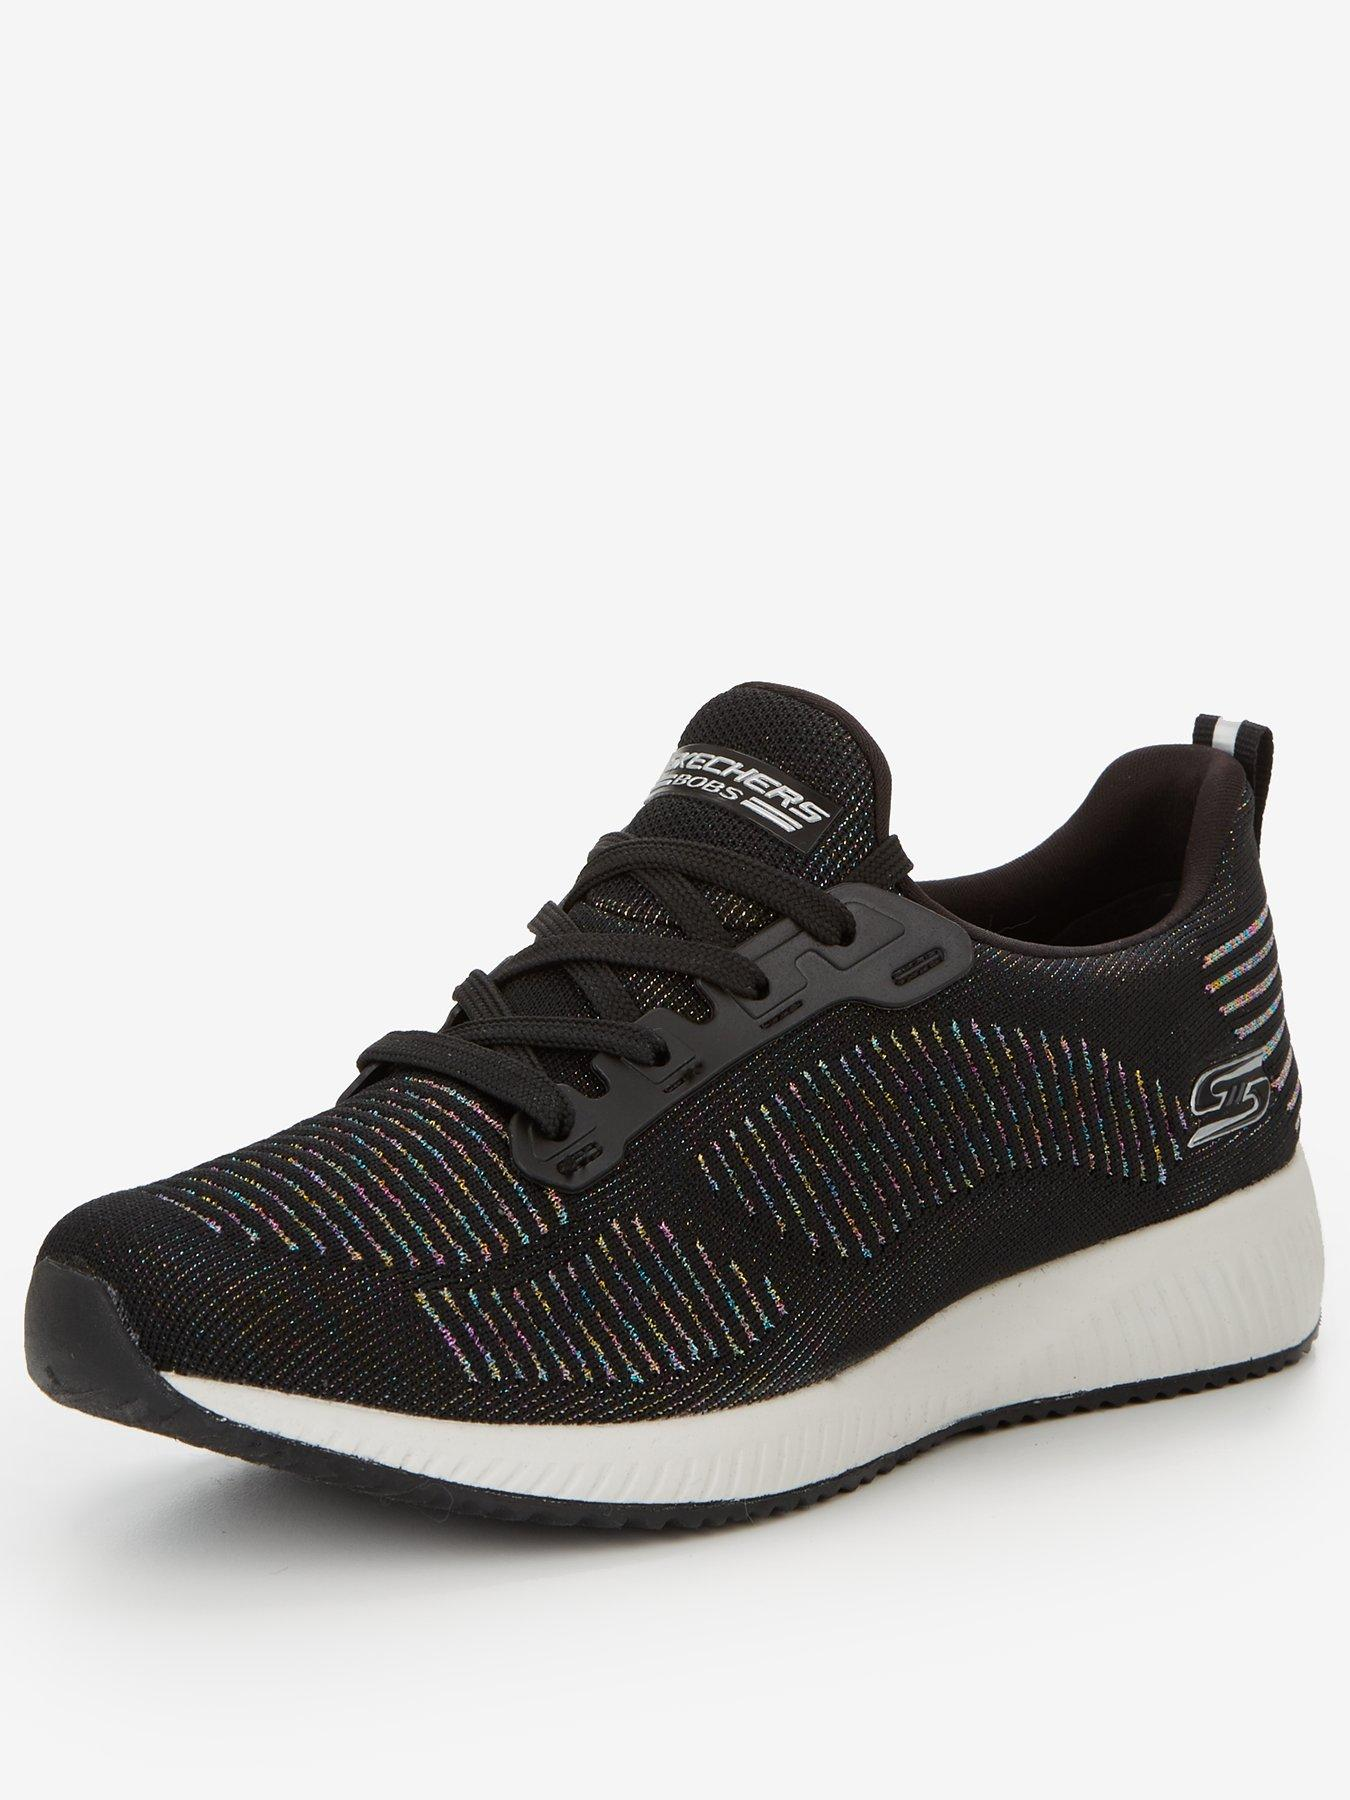 Skechers Bobs Squad - Multifaceted  41